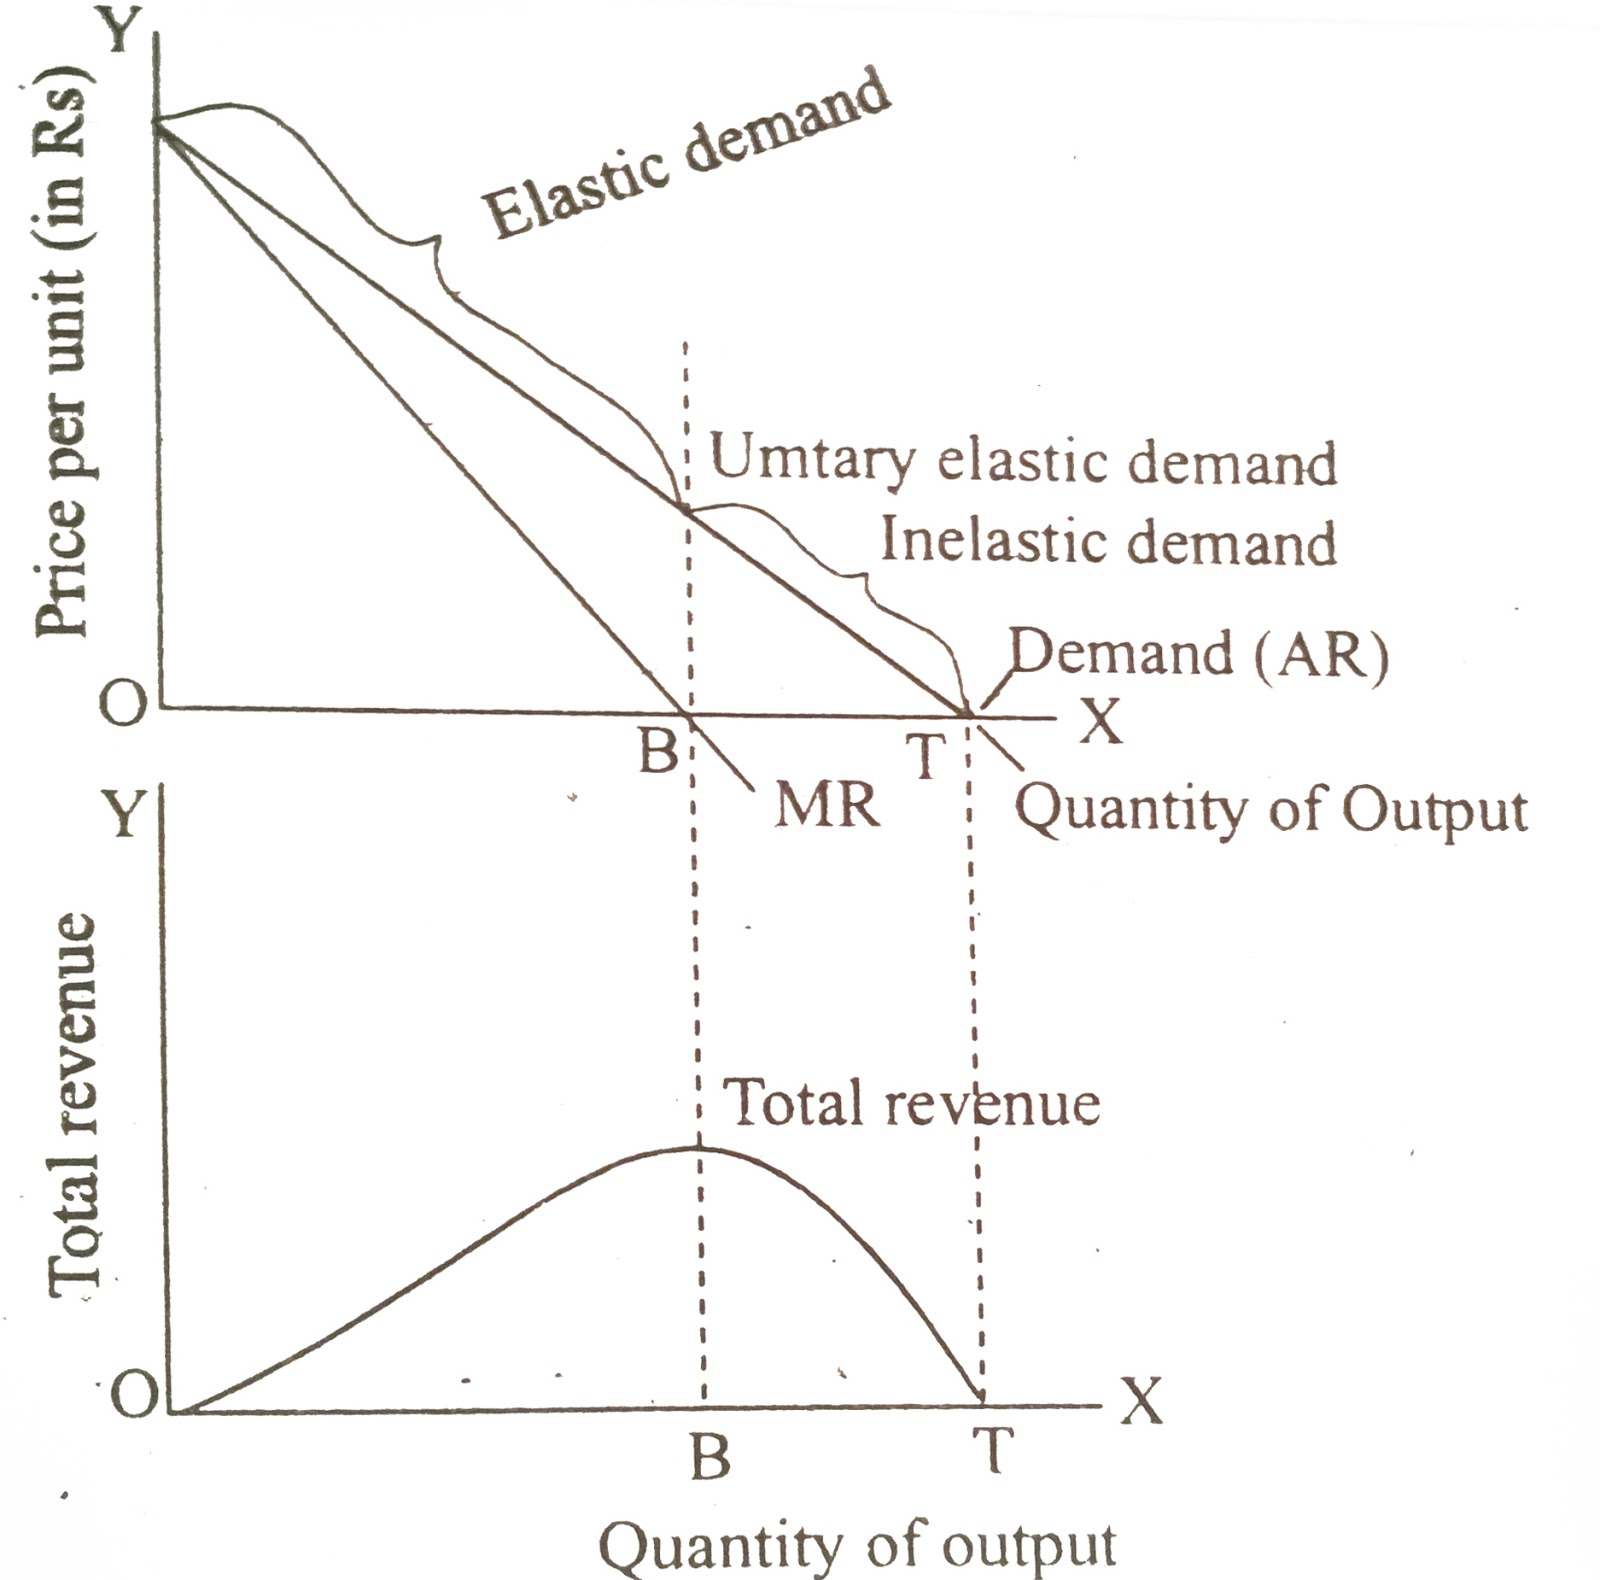 the relations among tr mr and price elasticity of demand are reviewed in the figure the top half of the diagram shows a liner demand or ar curve and a  [ 1600 x 1580 Pixel ]